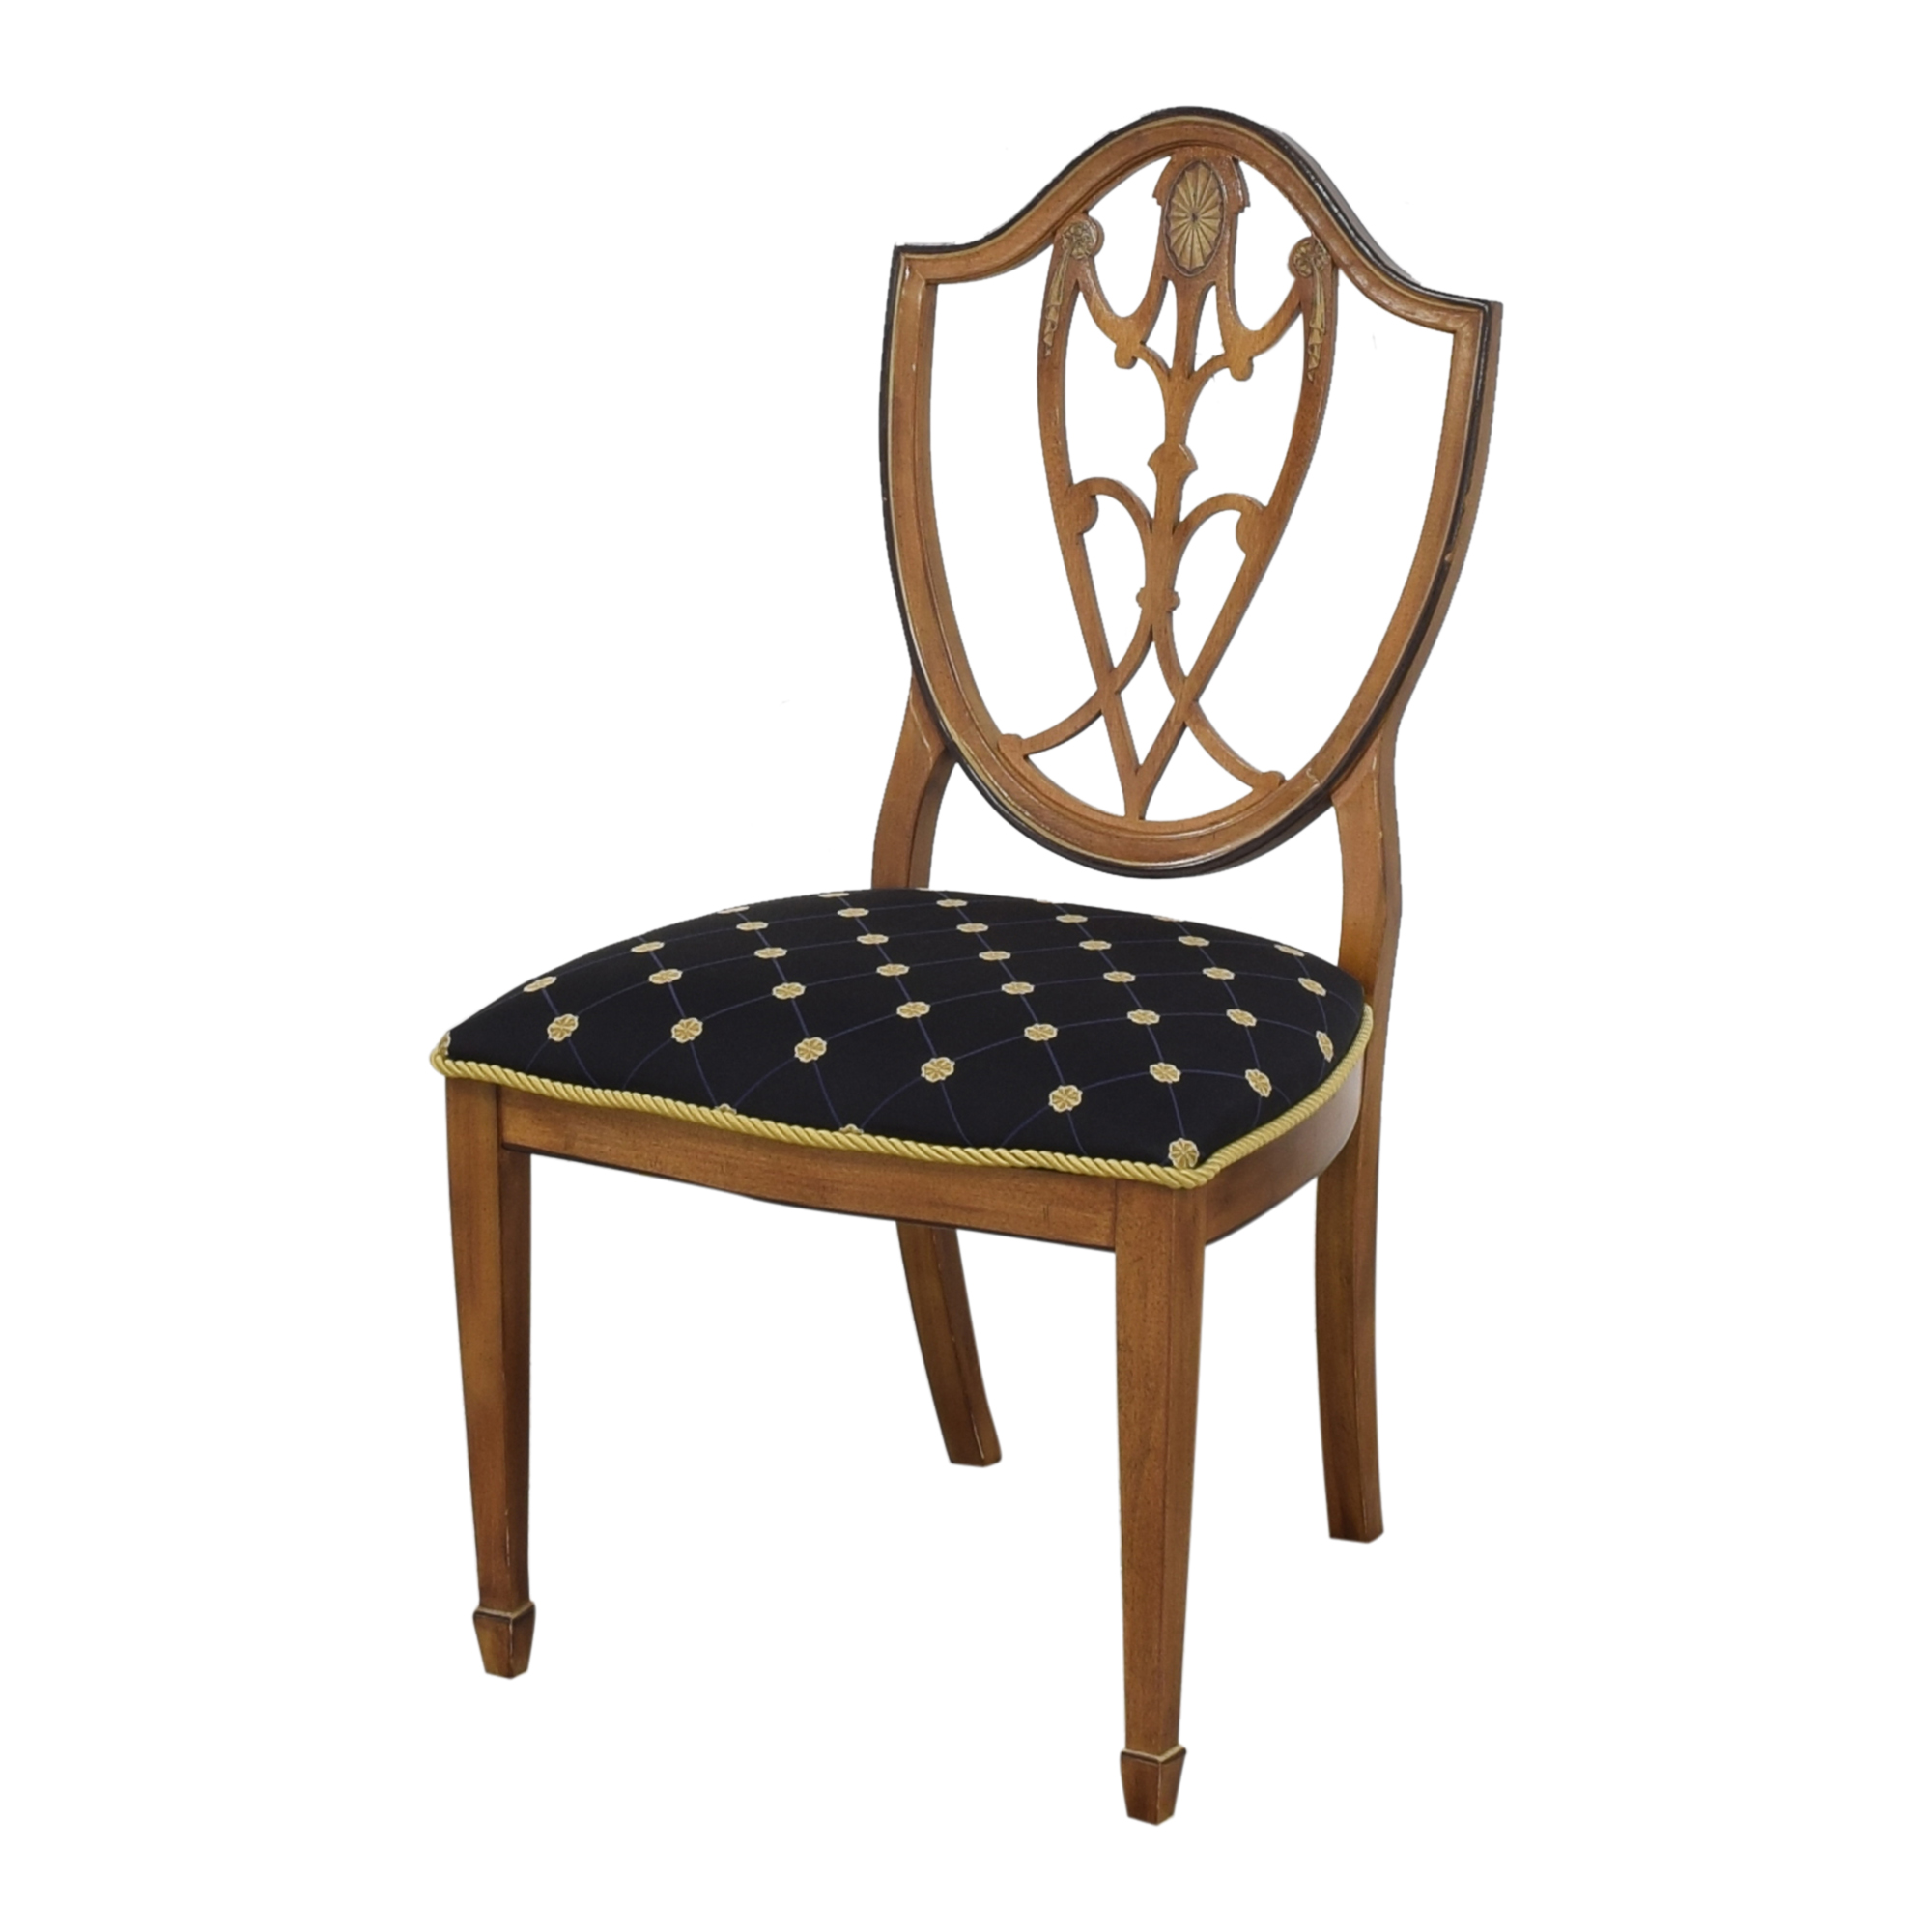 Drexel Drexel Upholstered Dining Chairs Dining Chairs